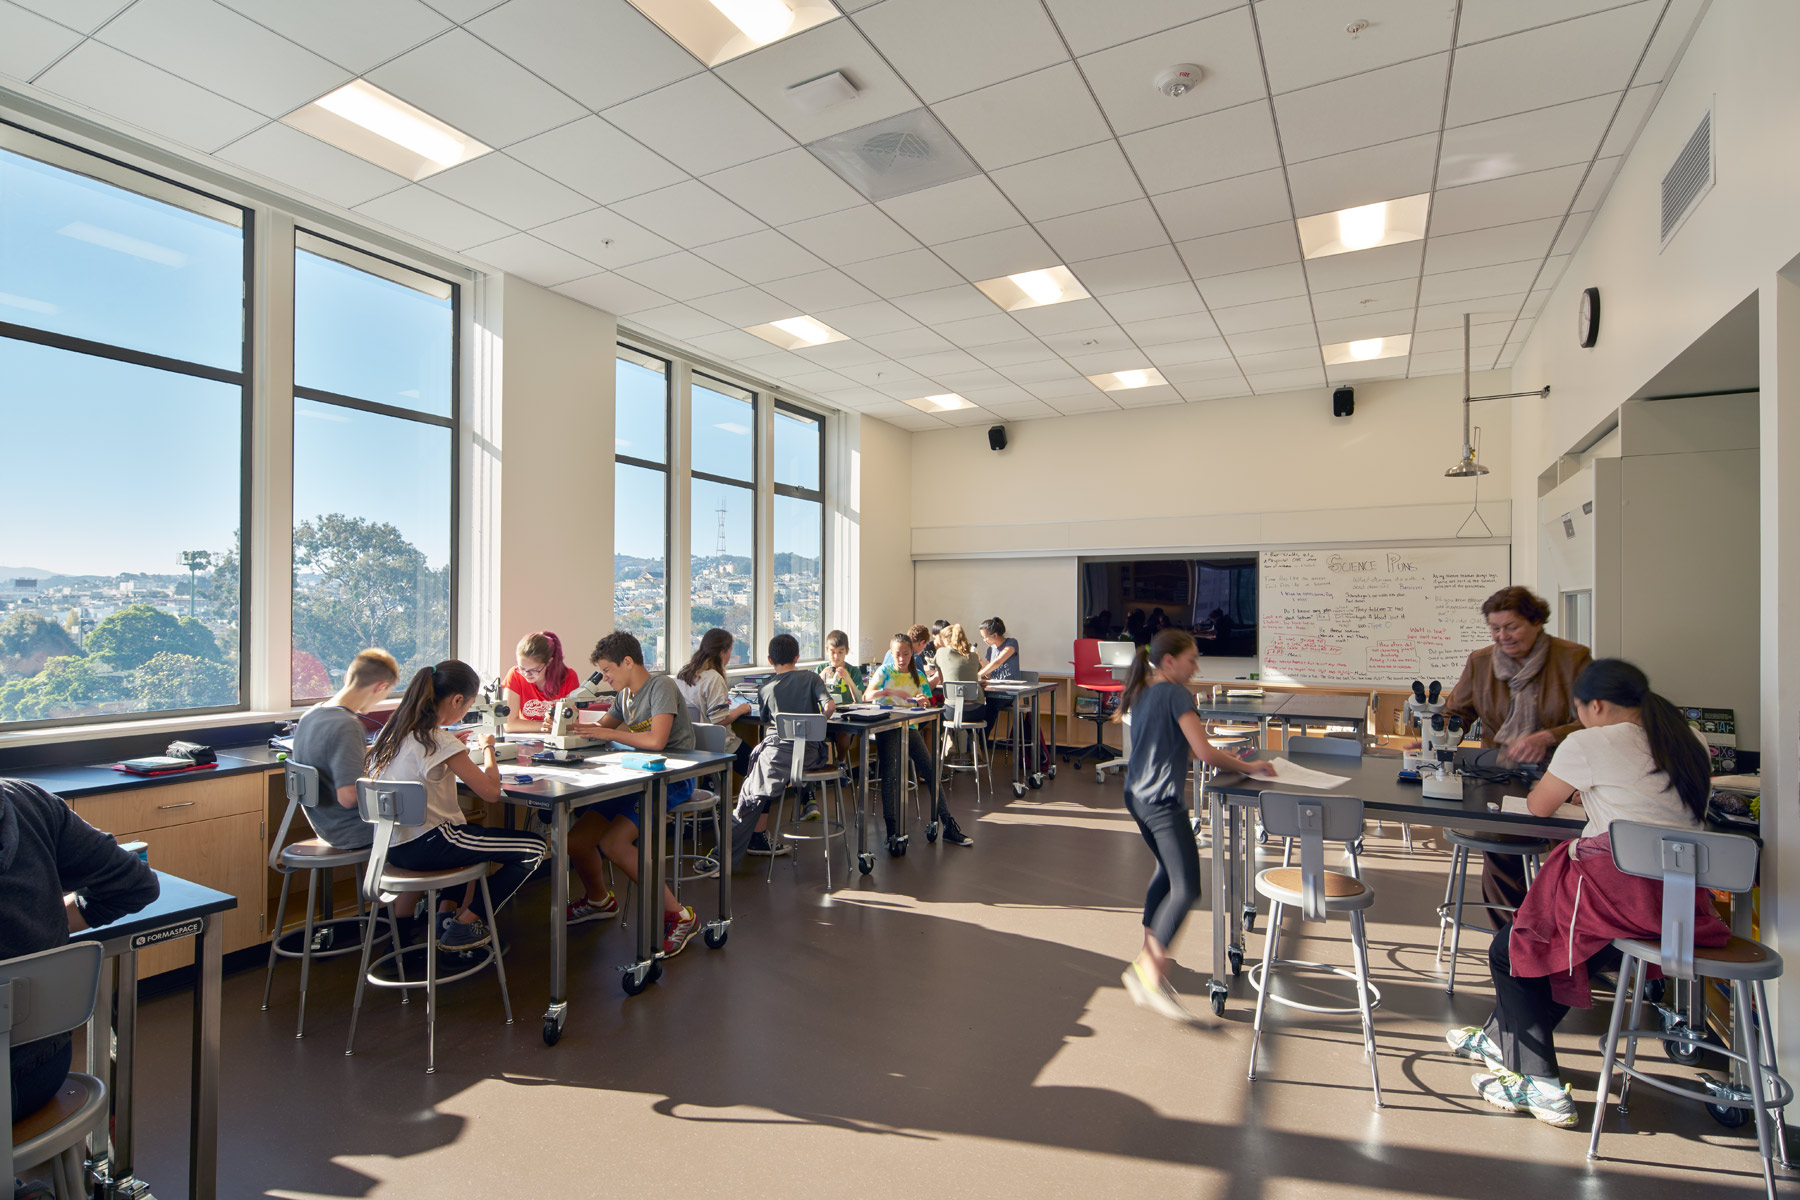 The Chinese American International School is a dual Chinese-English dual language immersion school in San Francisco; the new middle school campus is an adaptive reuse of two abandoned buildings into a dynamic and collaborative new educational environment.